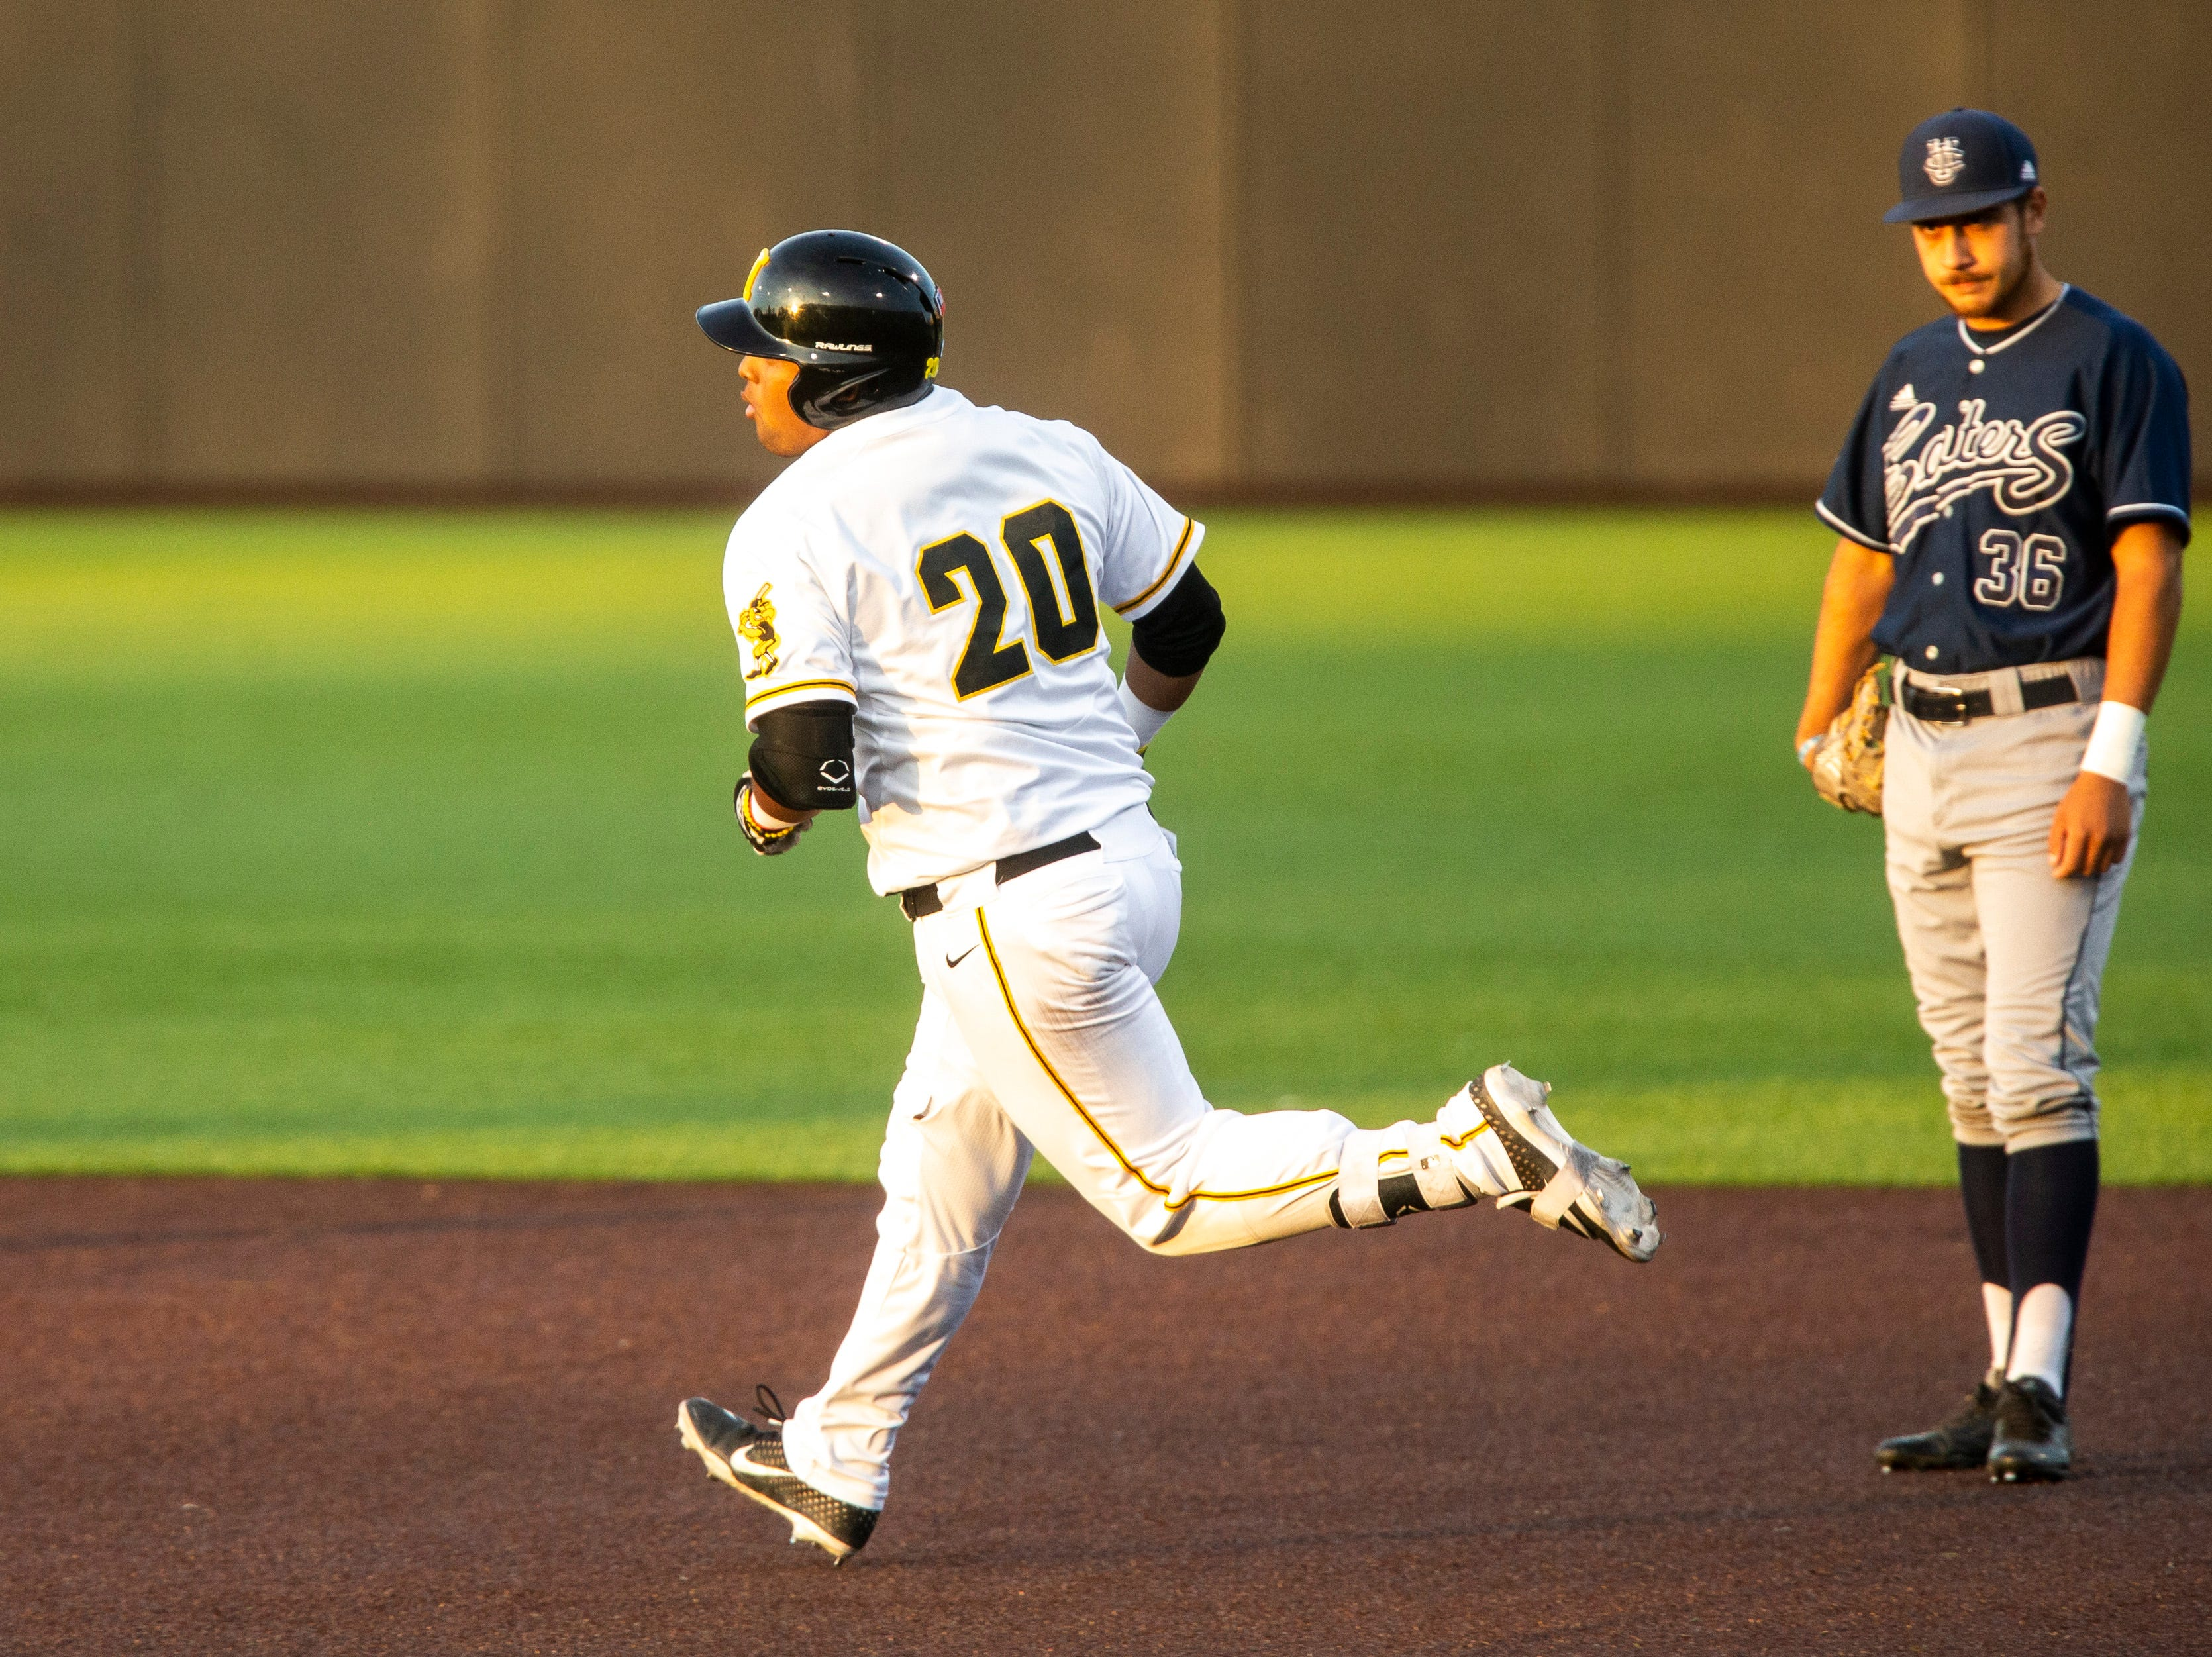 Iowa infielder Izaya Fullard (20) celebrates while rounding first past University of California Irvine's Adrian Damla (36) after hitting a home run during NCAA non conference baseball game, Friday, May 3, 2019, at Duane Banks Field in Iowa City, Iowa.